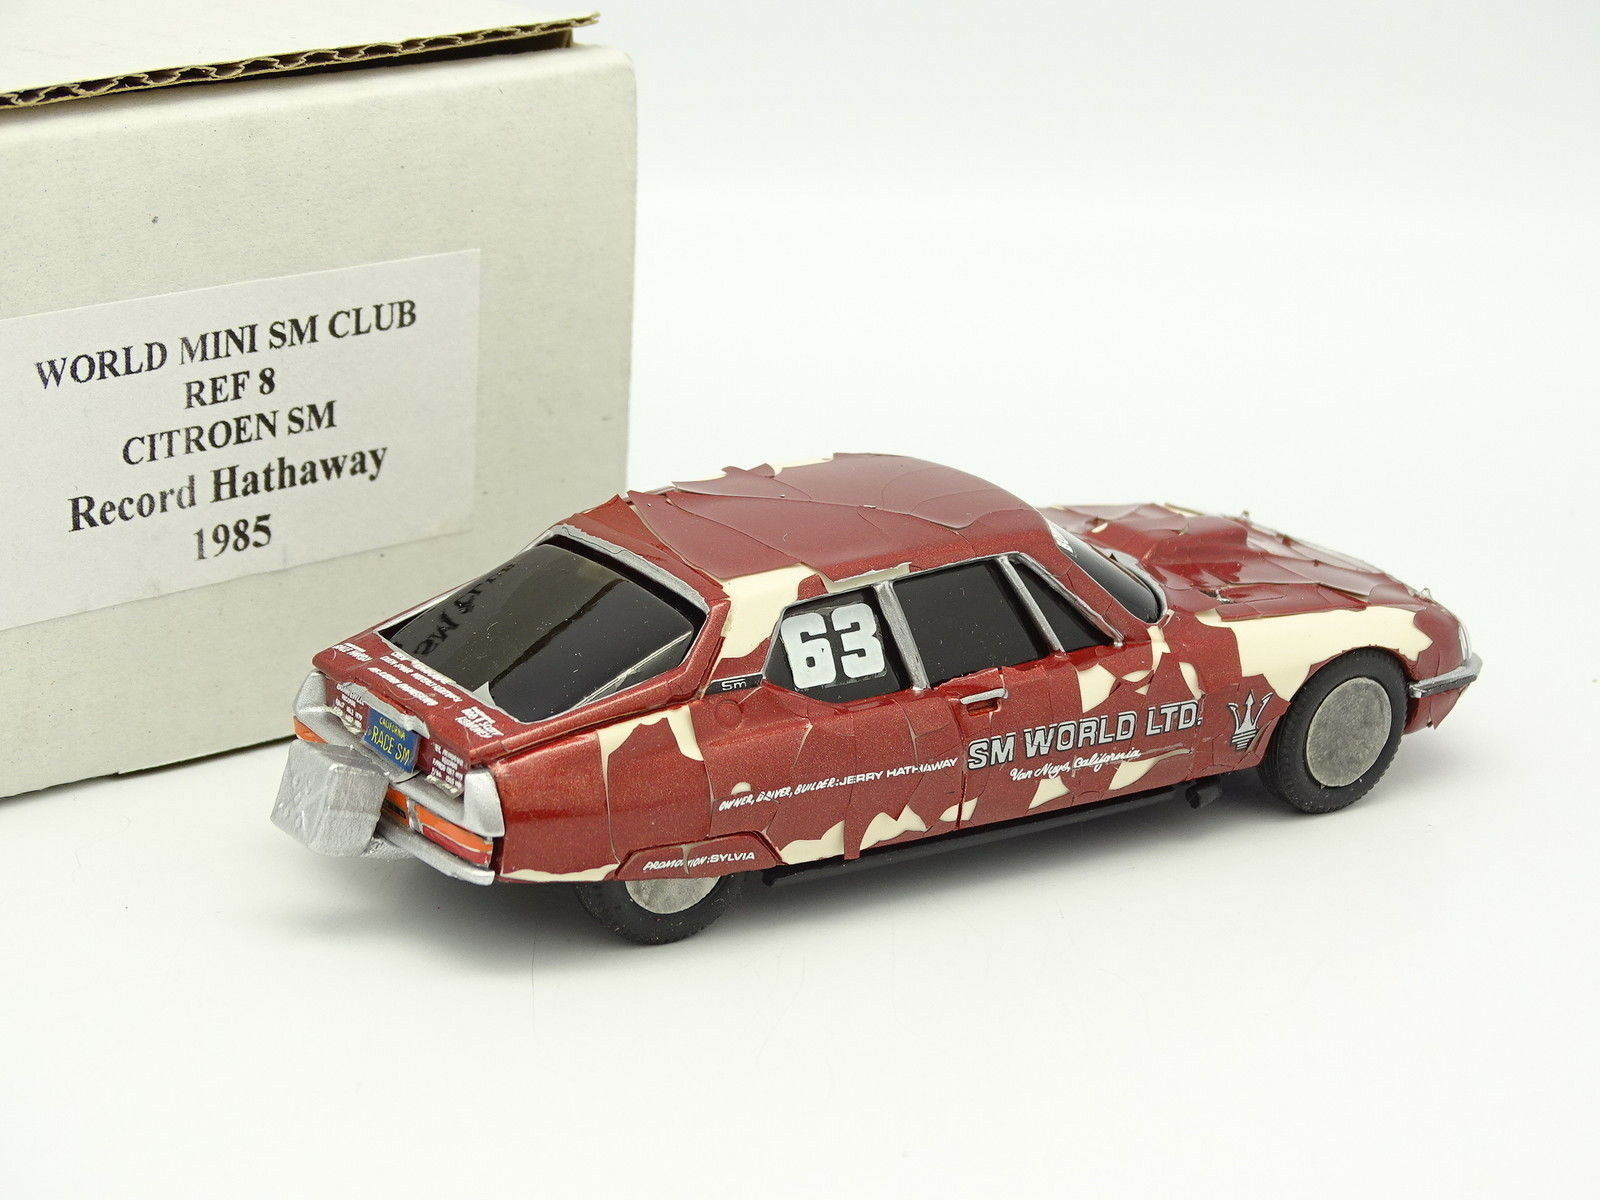 World Mini SM Club Kit Montado 1 1 1 43 - Citroen SM Record Hathaway 1985 a31c70